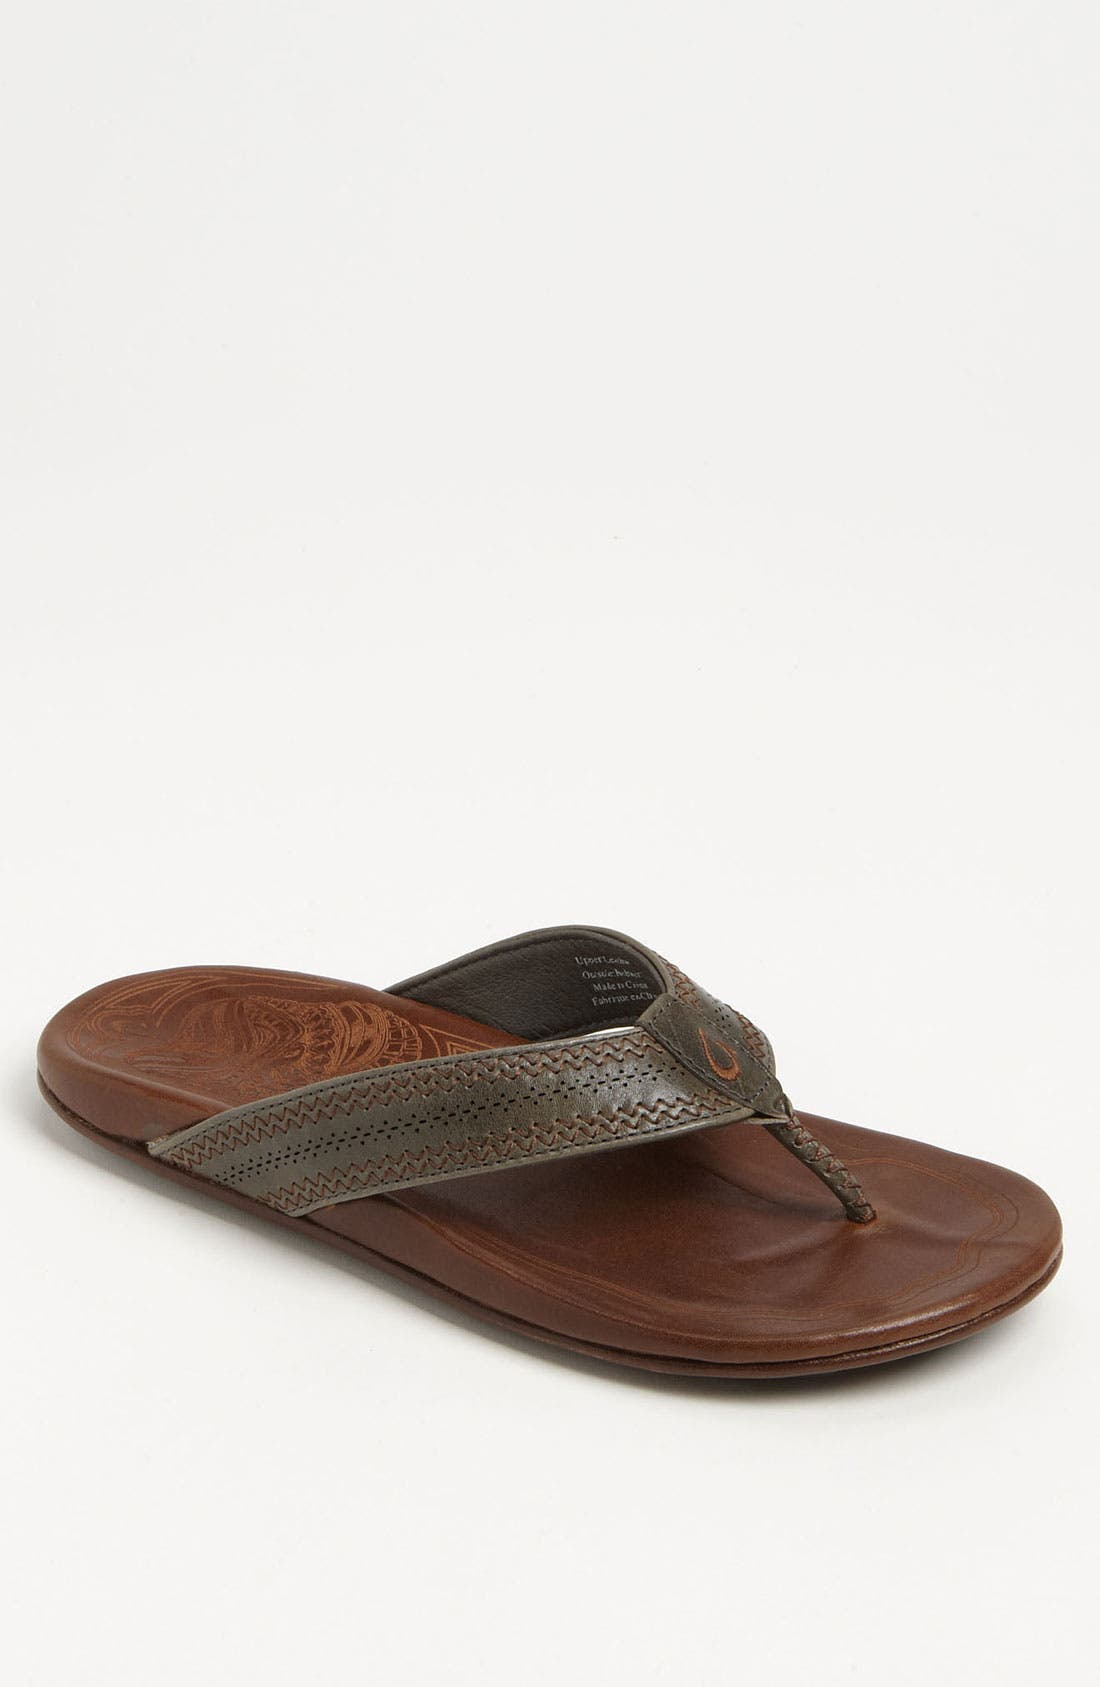 Alternate Image 1 Selected - OluKai 'Pookela' Flip Flop (Men)